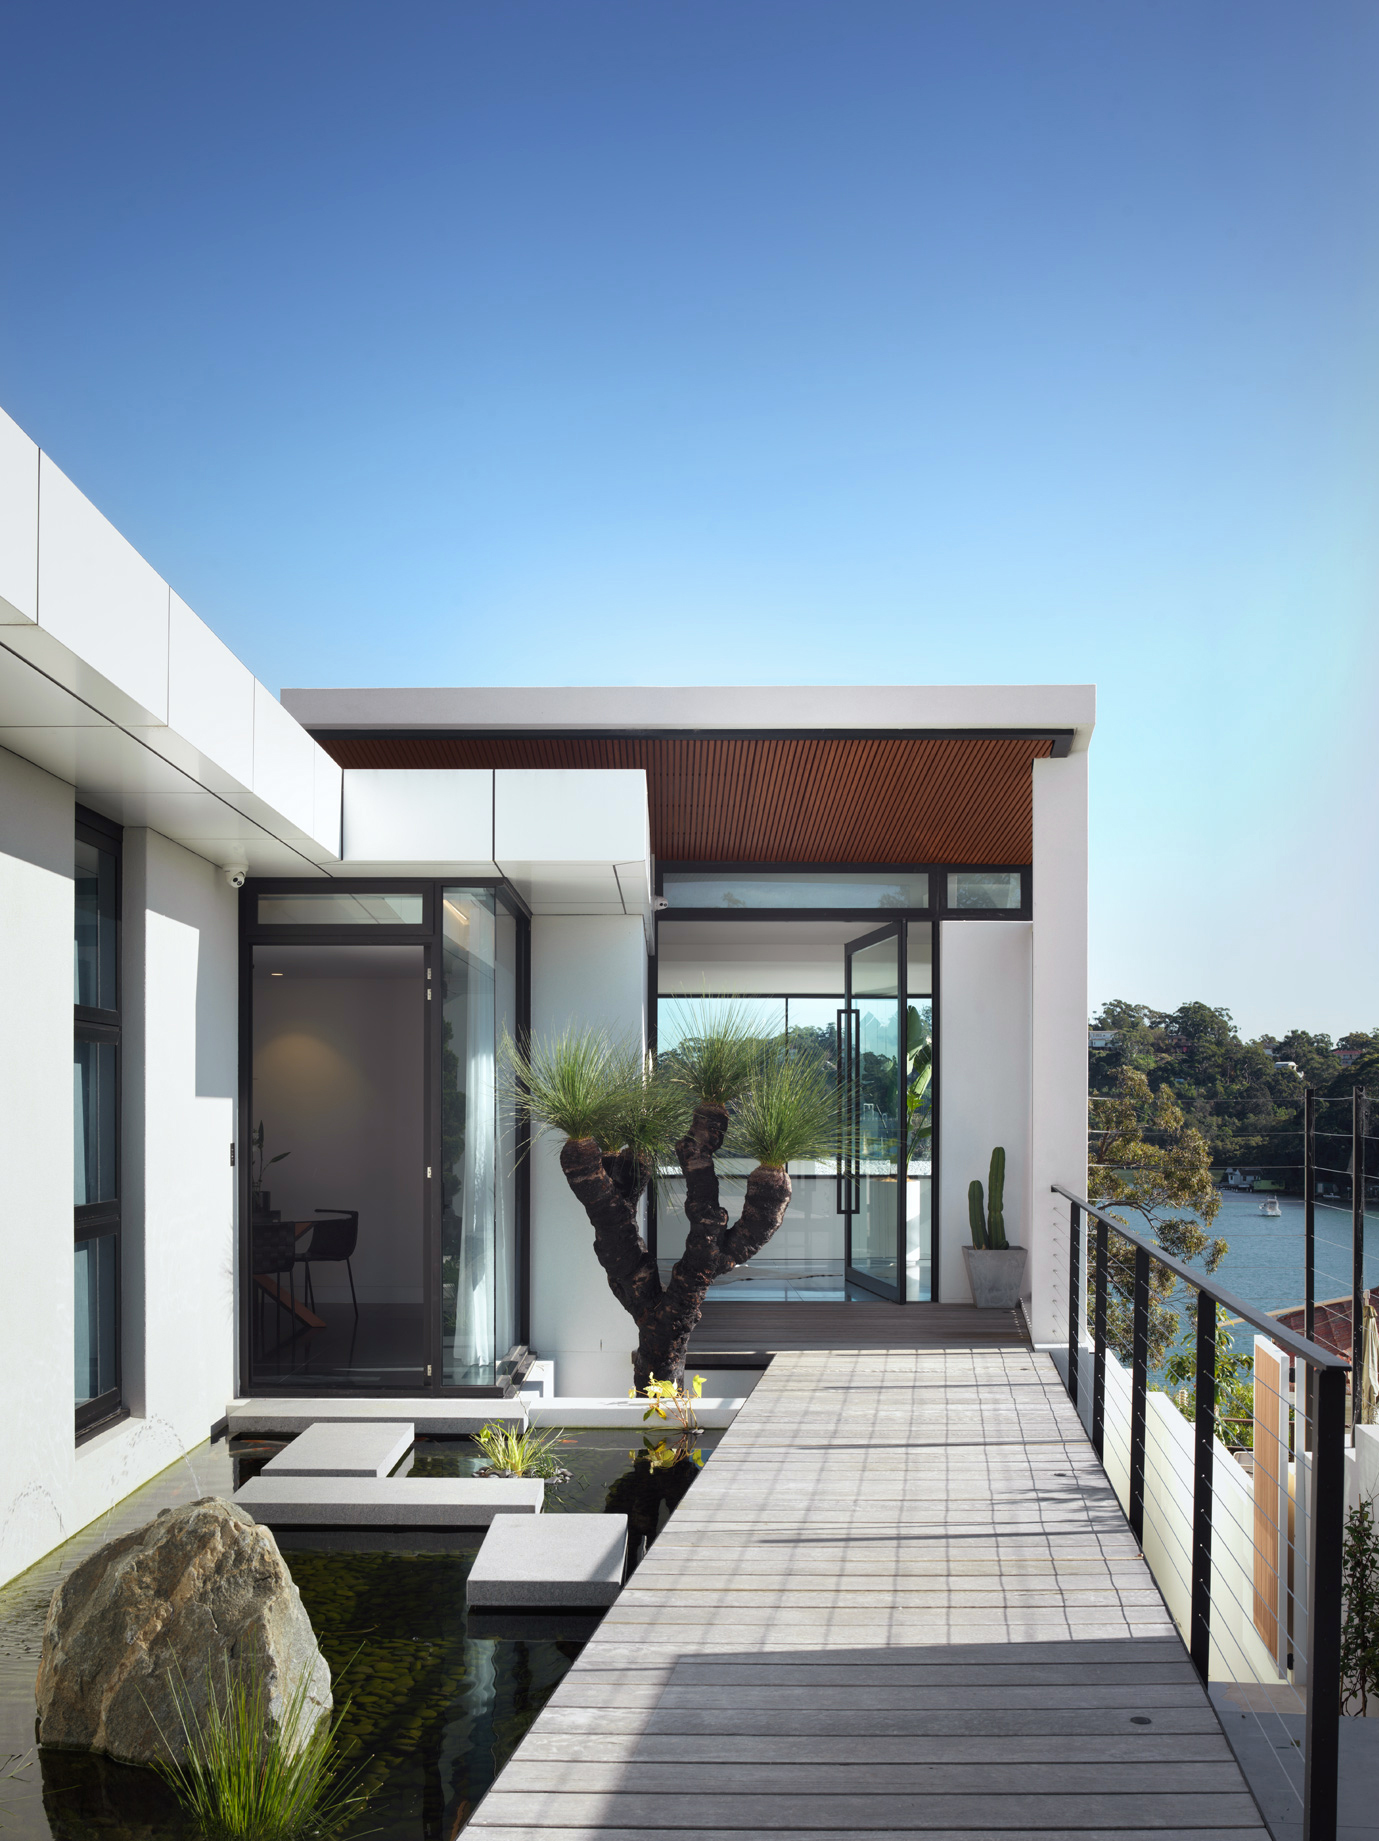 luke-butterly-2020-Oyster-Bay-House-by-Couvaras-Architecture-Sydney-NSW--42